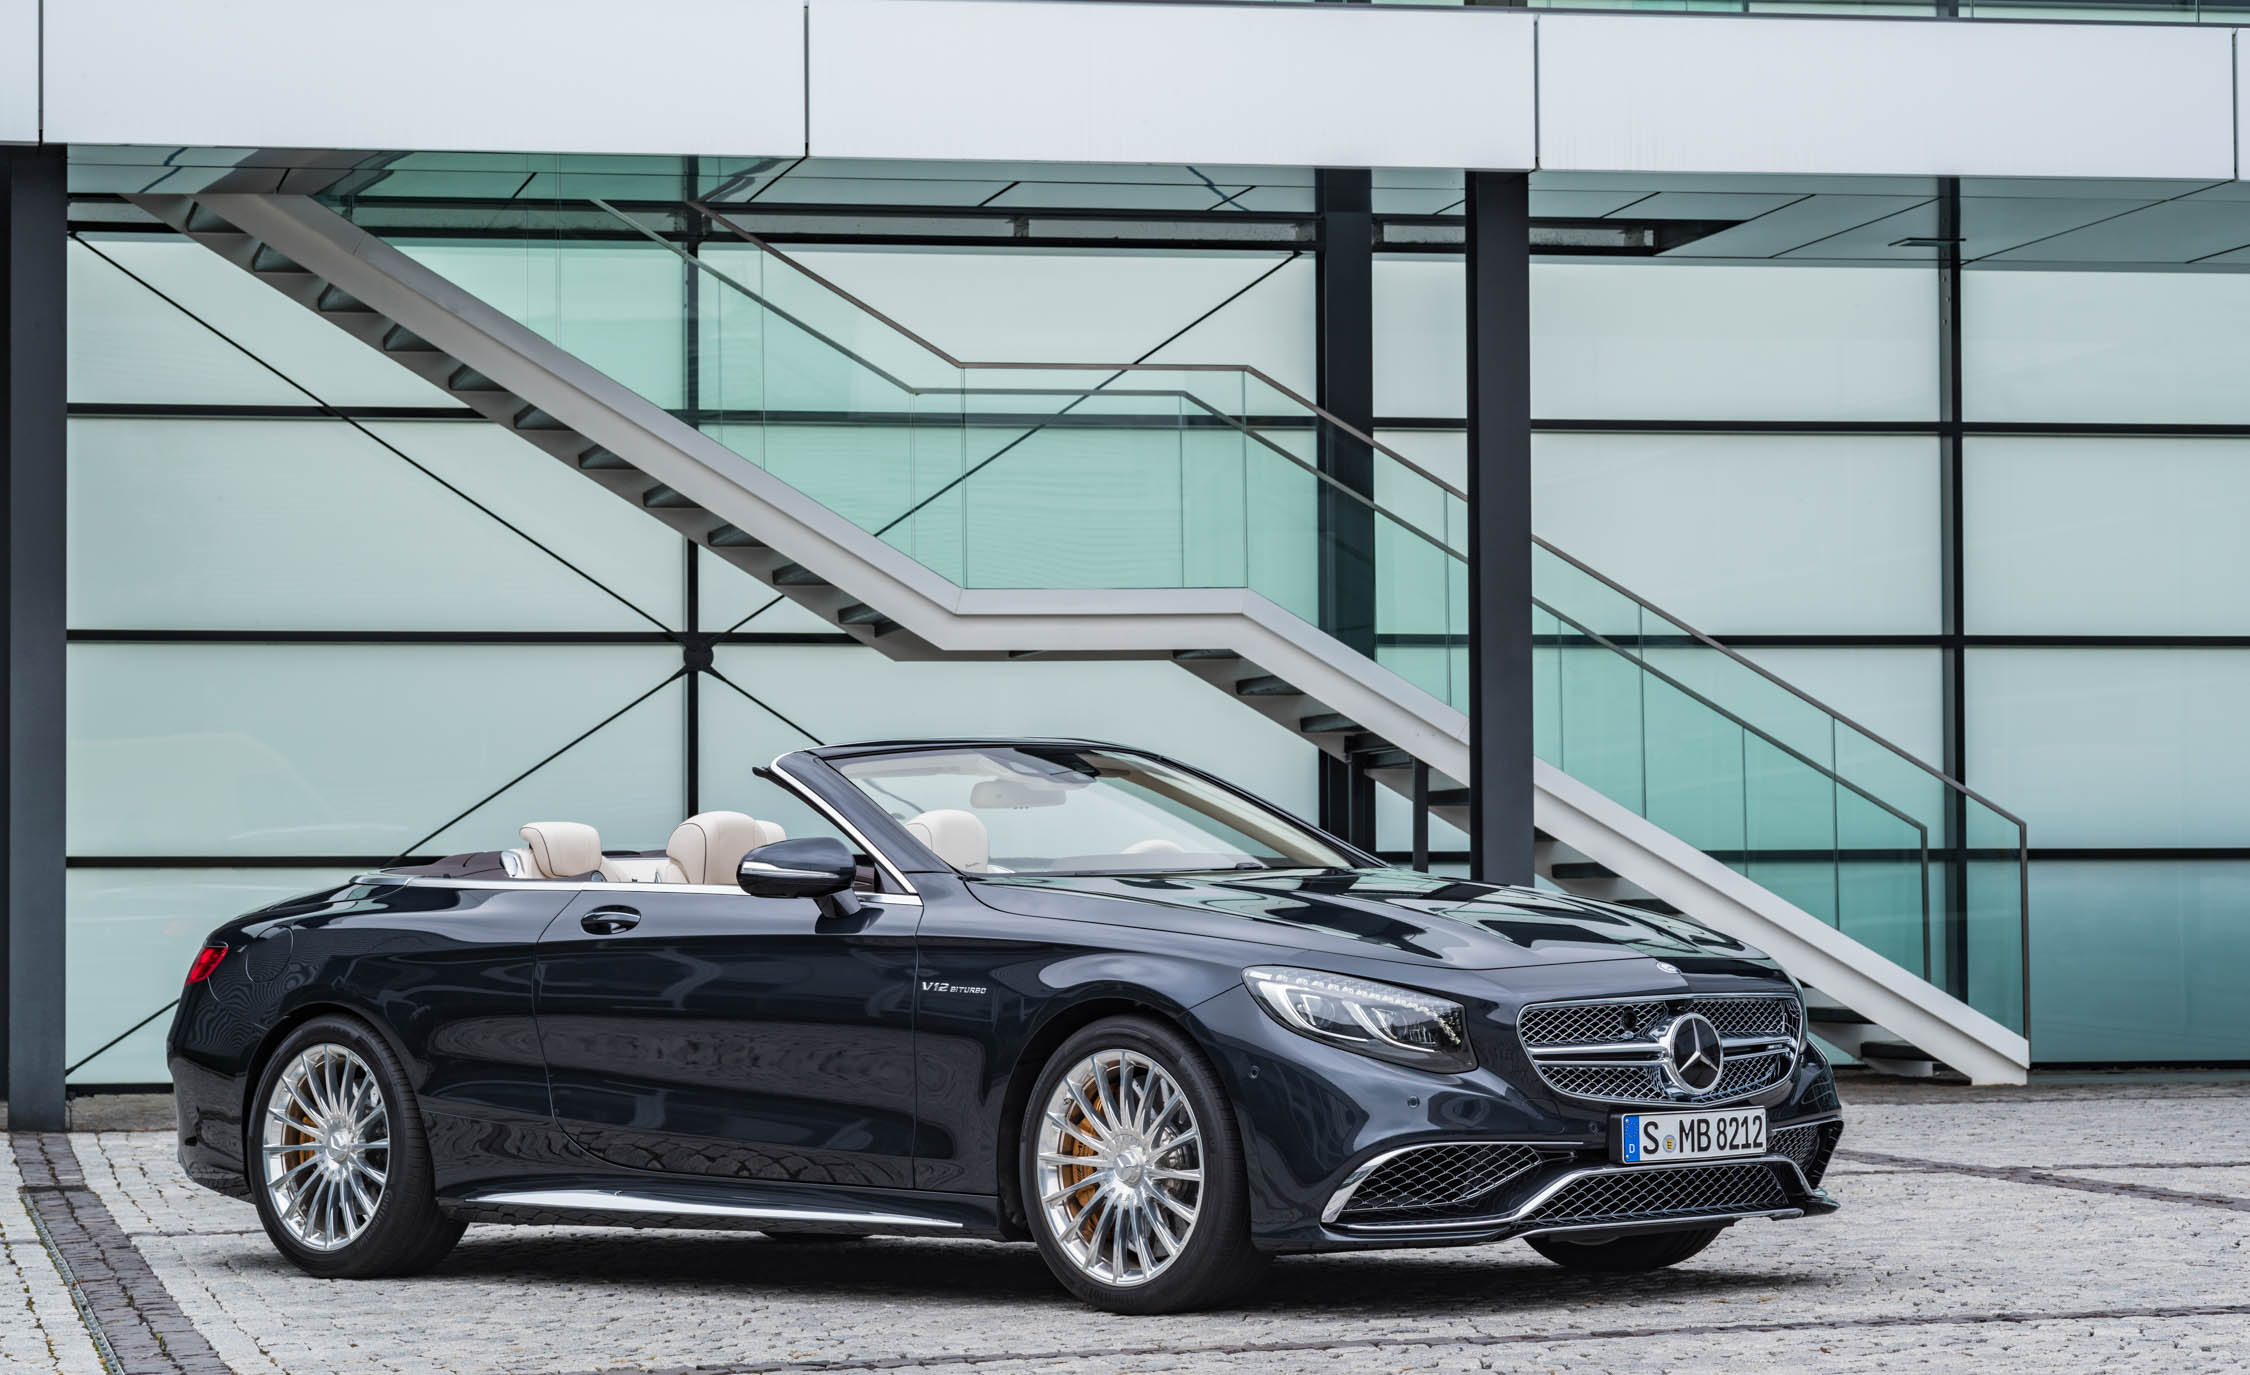 2017 Mercedes Amg S65 Cabriolet Exterior Front And Side View Roof Open (View 15 of 15)